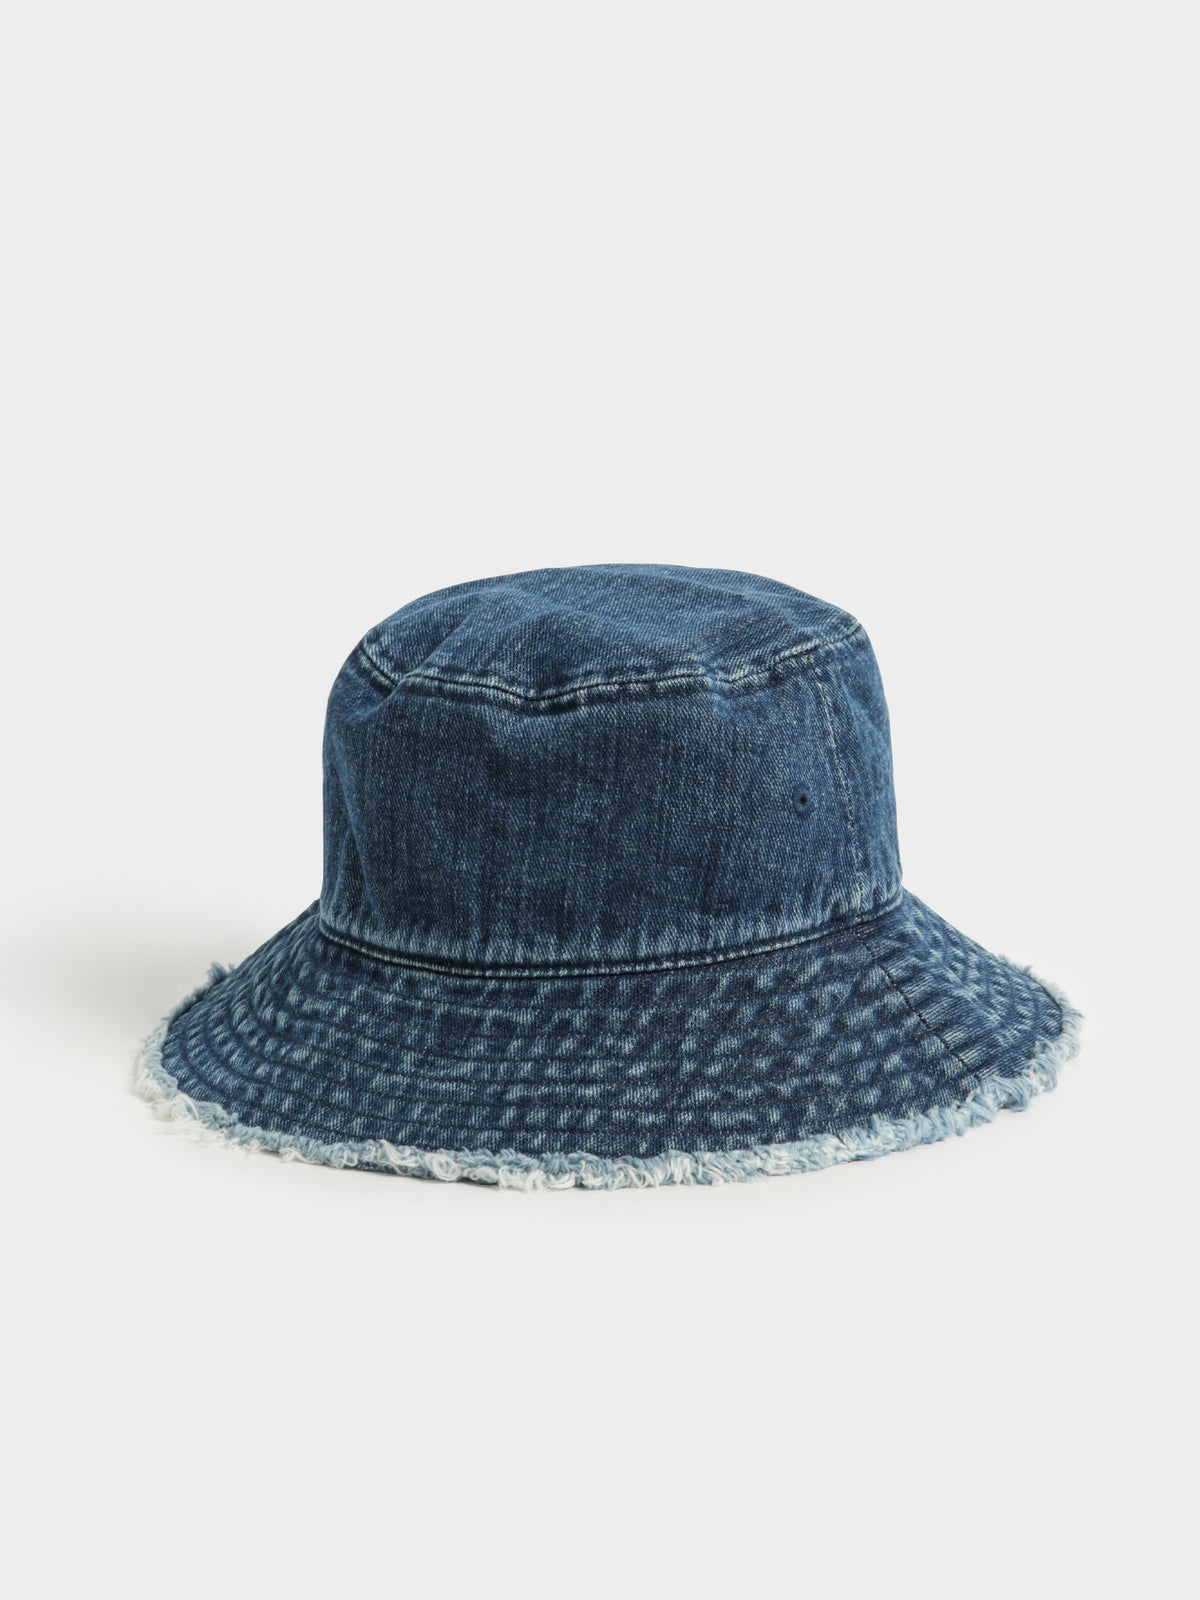 TJW Heritage Denim Bucket Hat in Blue